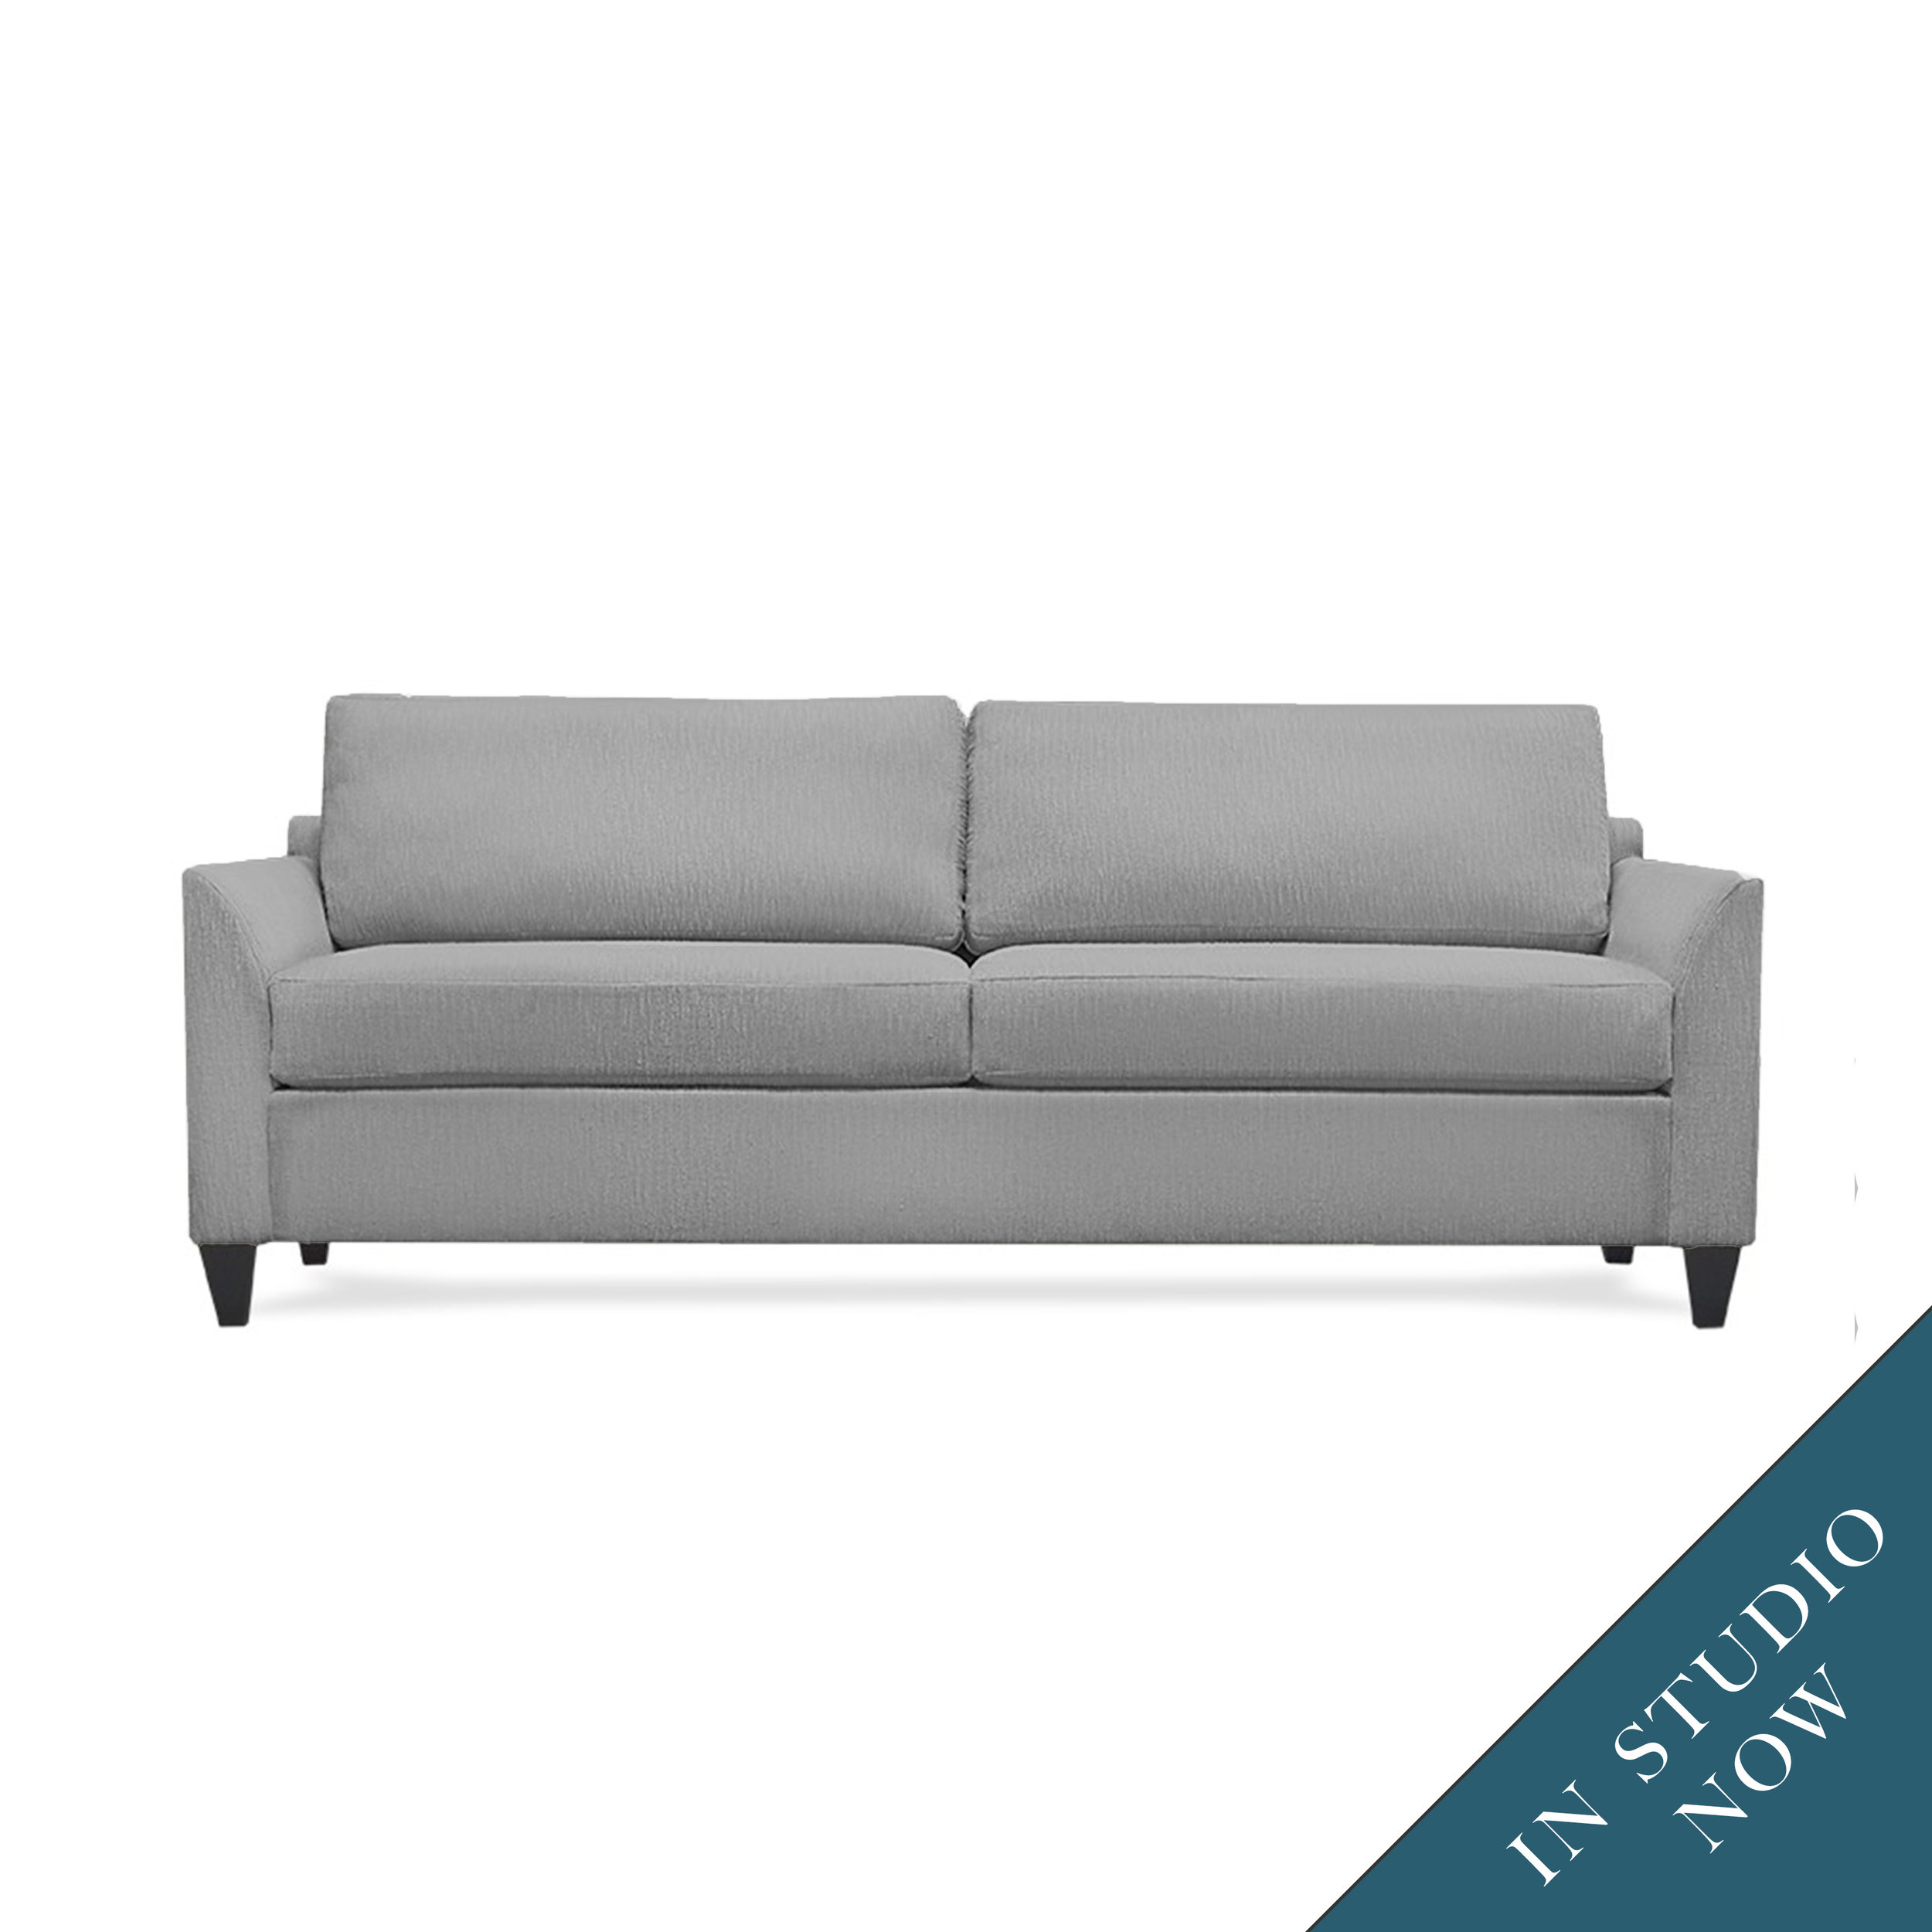 The versatility of our Studio collection grows with the new Greenwich, a sleek sofa with three arm options.